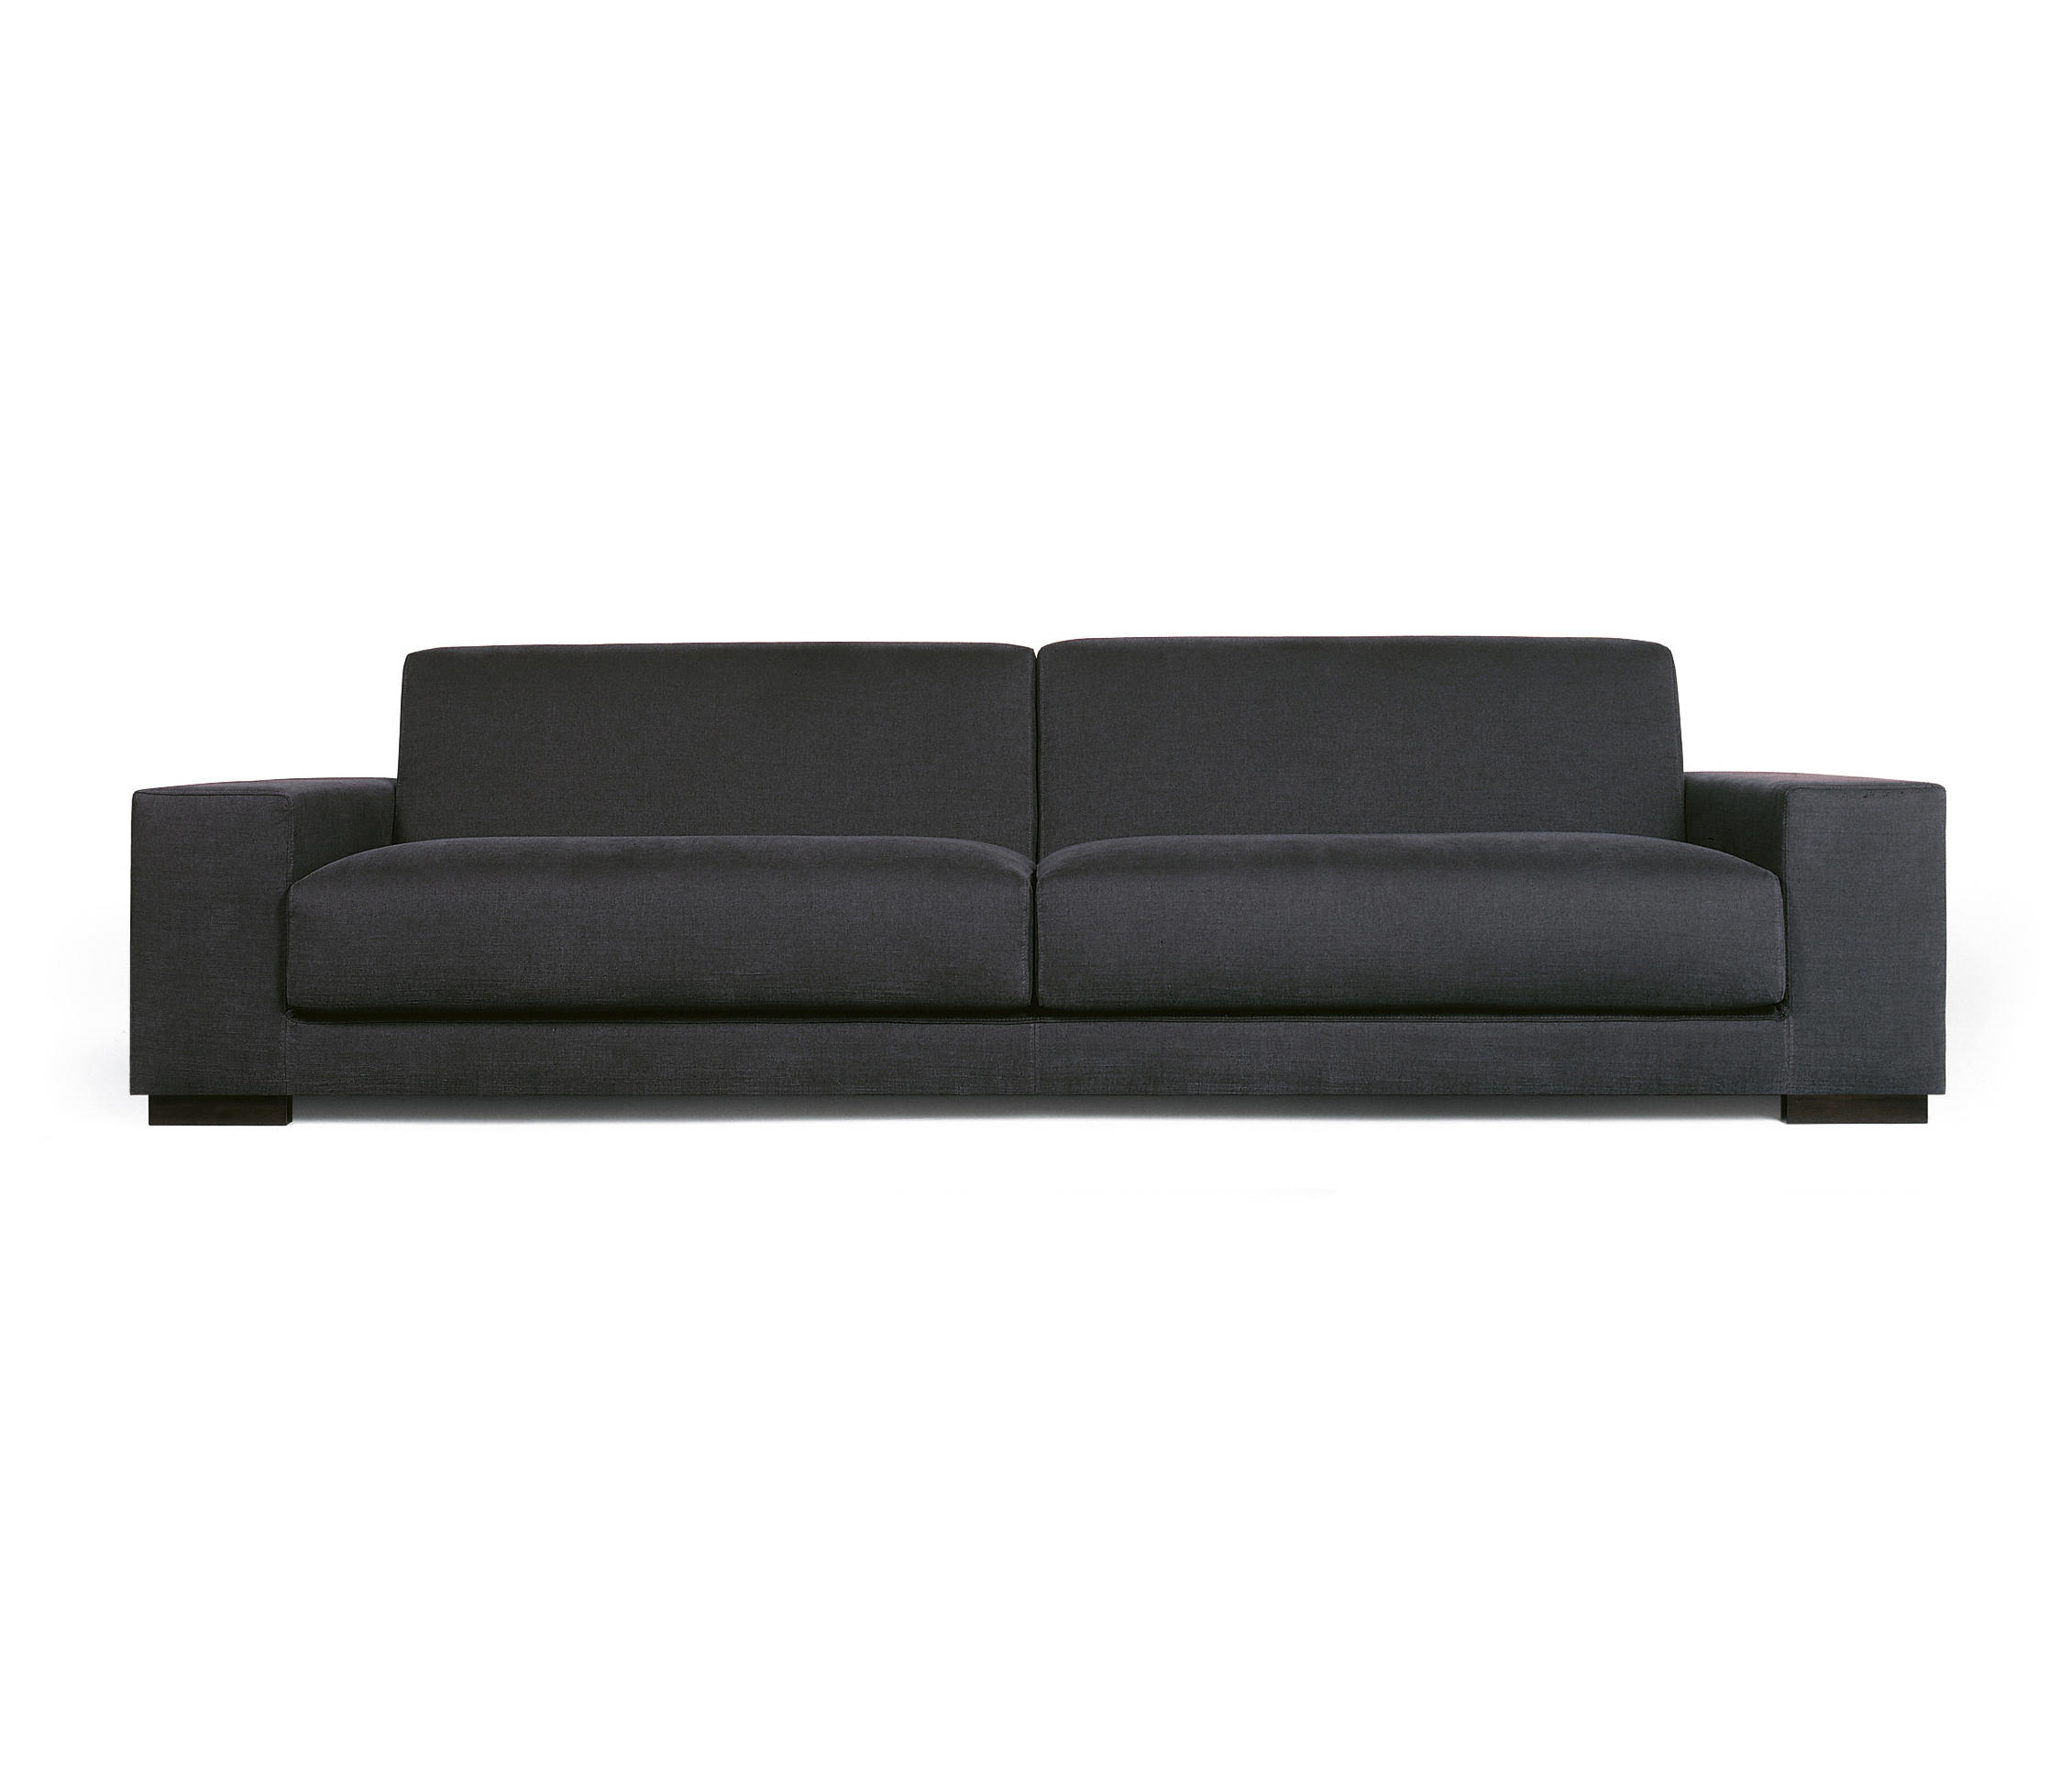 ELEVA - Sofas from Sancal | Architonic